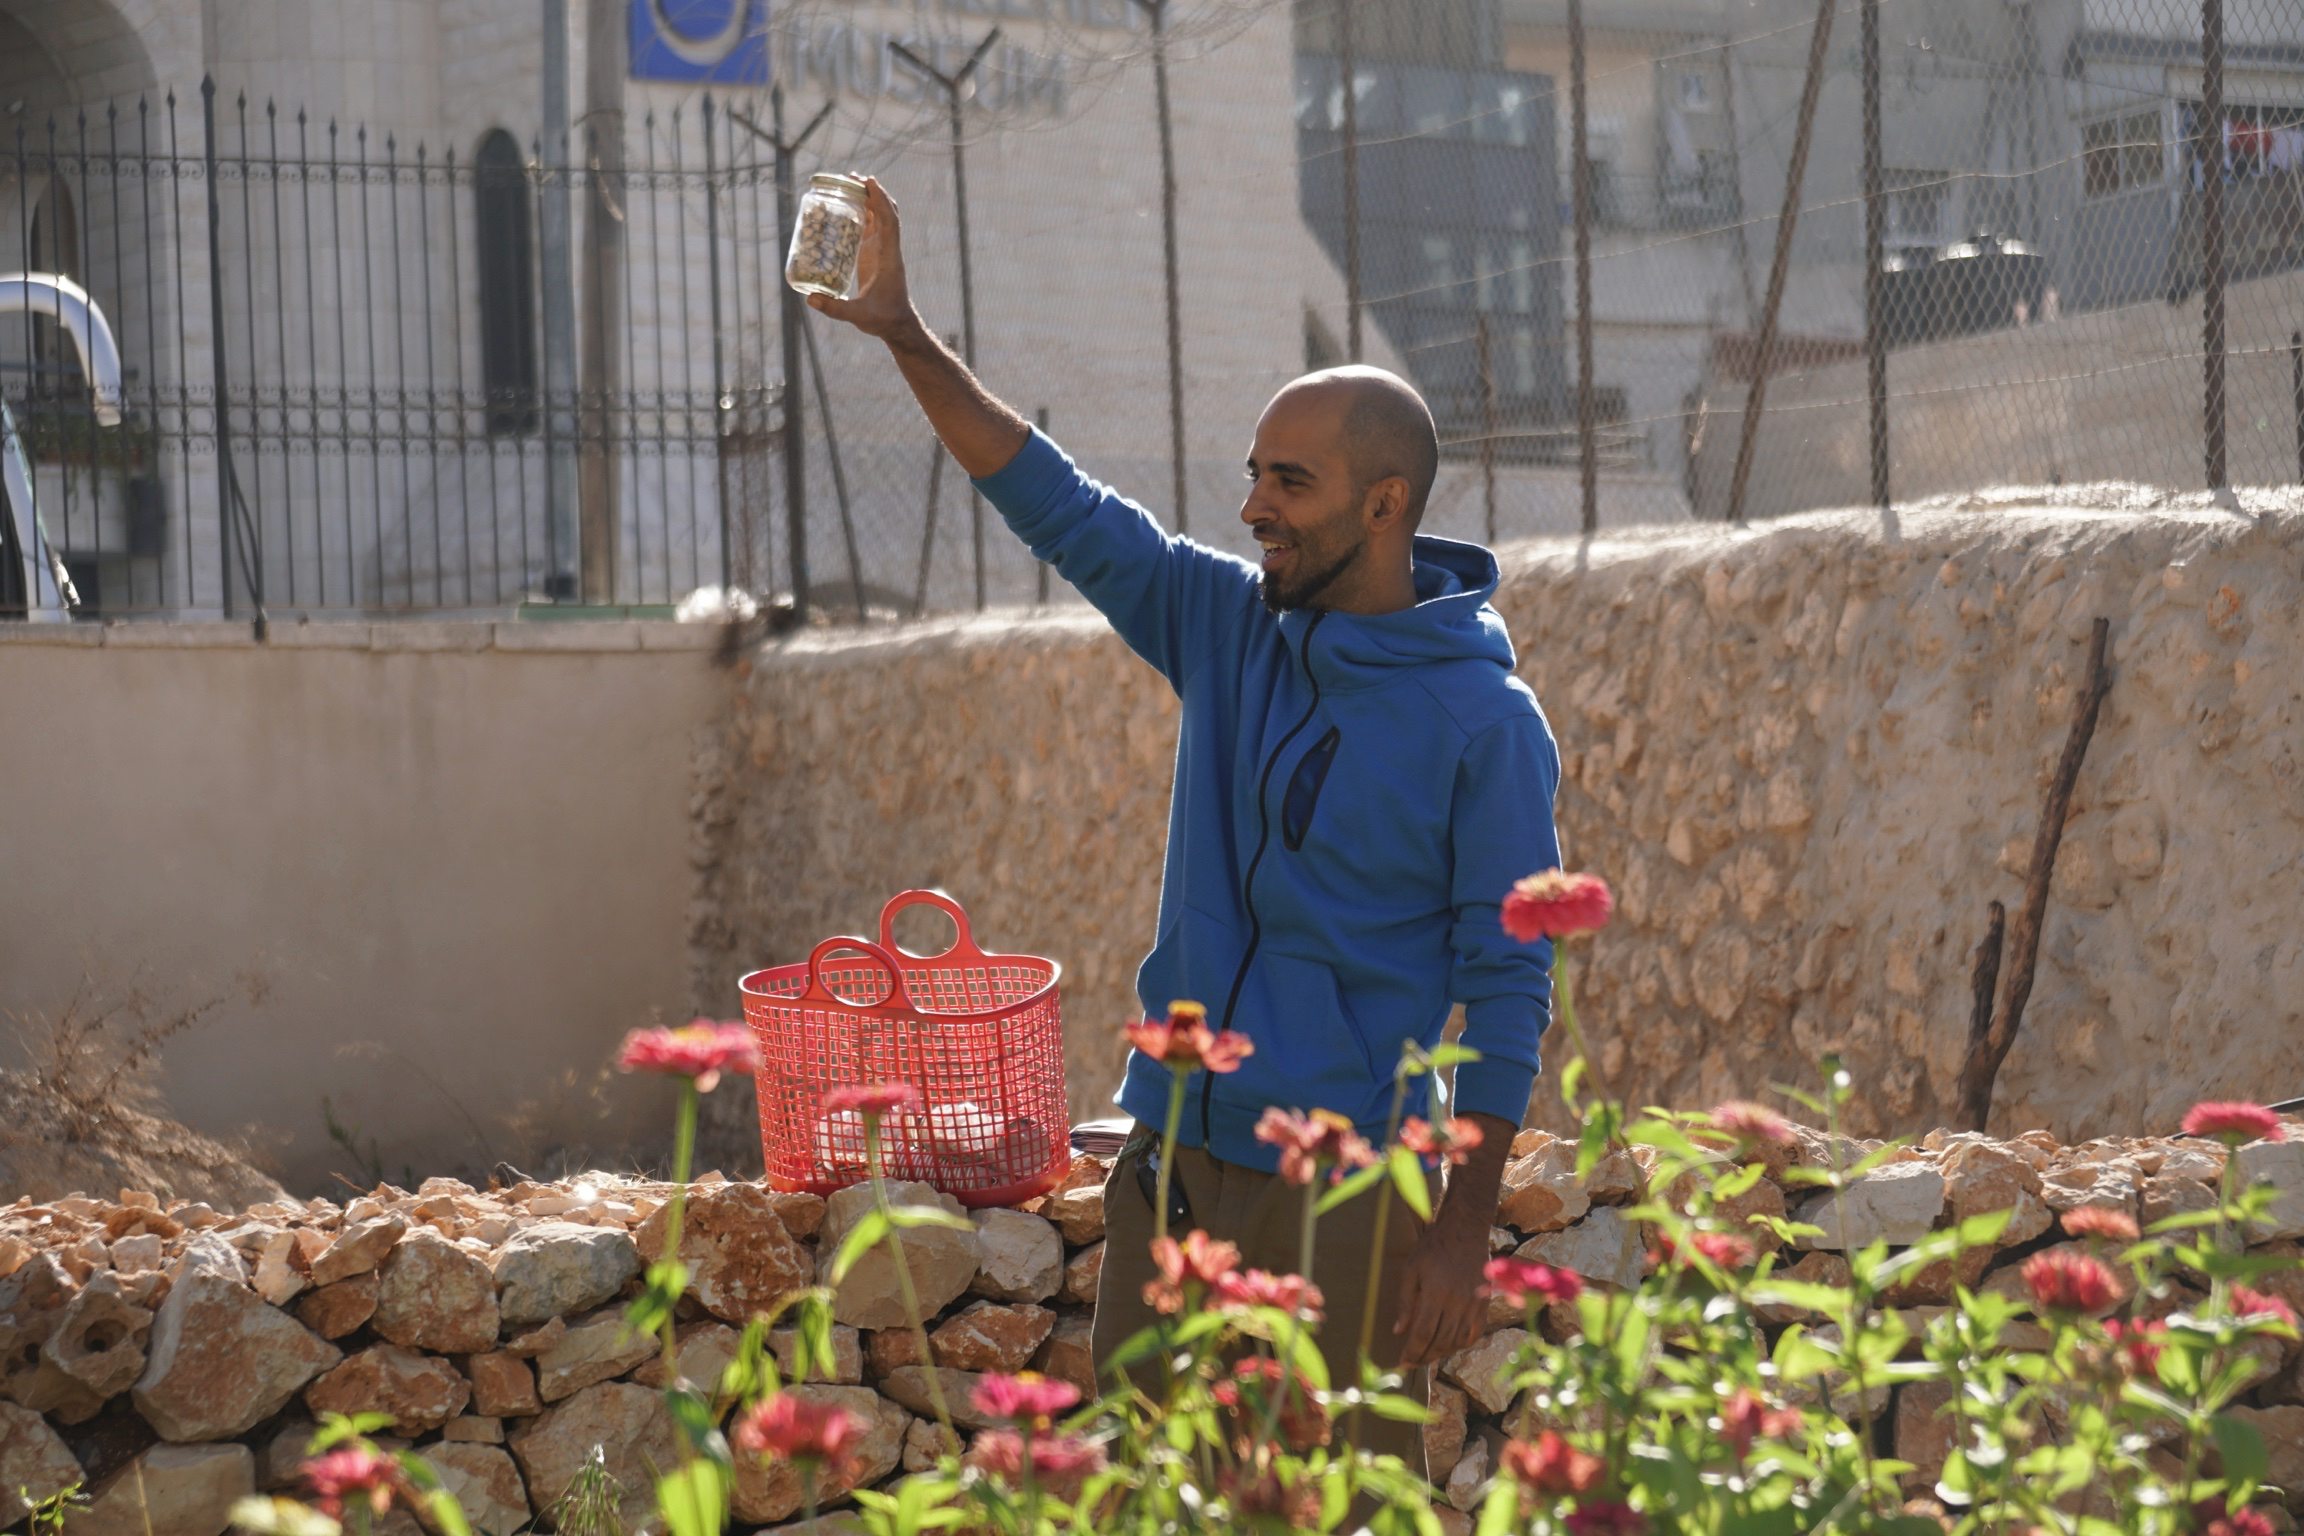 Human resilience and ecological resistance in the tear gas capital of the world  . In and around Bethlehem, Palestinians are building gardens and doing permaculture in an environment threatened by chemical attacks. (Environmental Health News, 2019) Photo credit: Will Duggan/Eyewitness Palestine